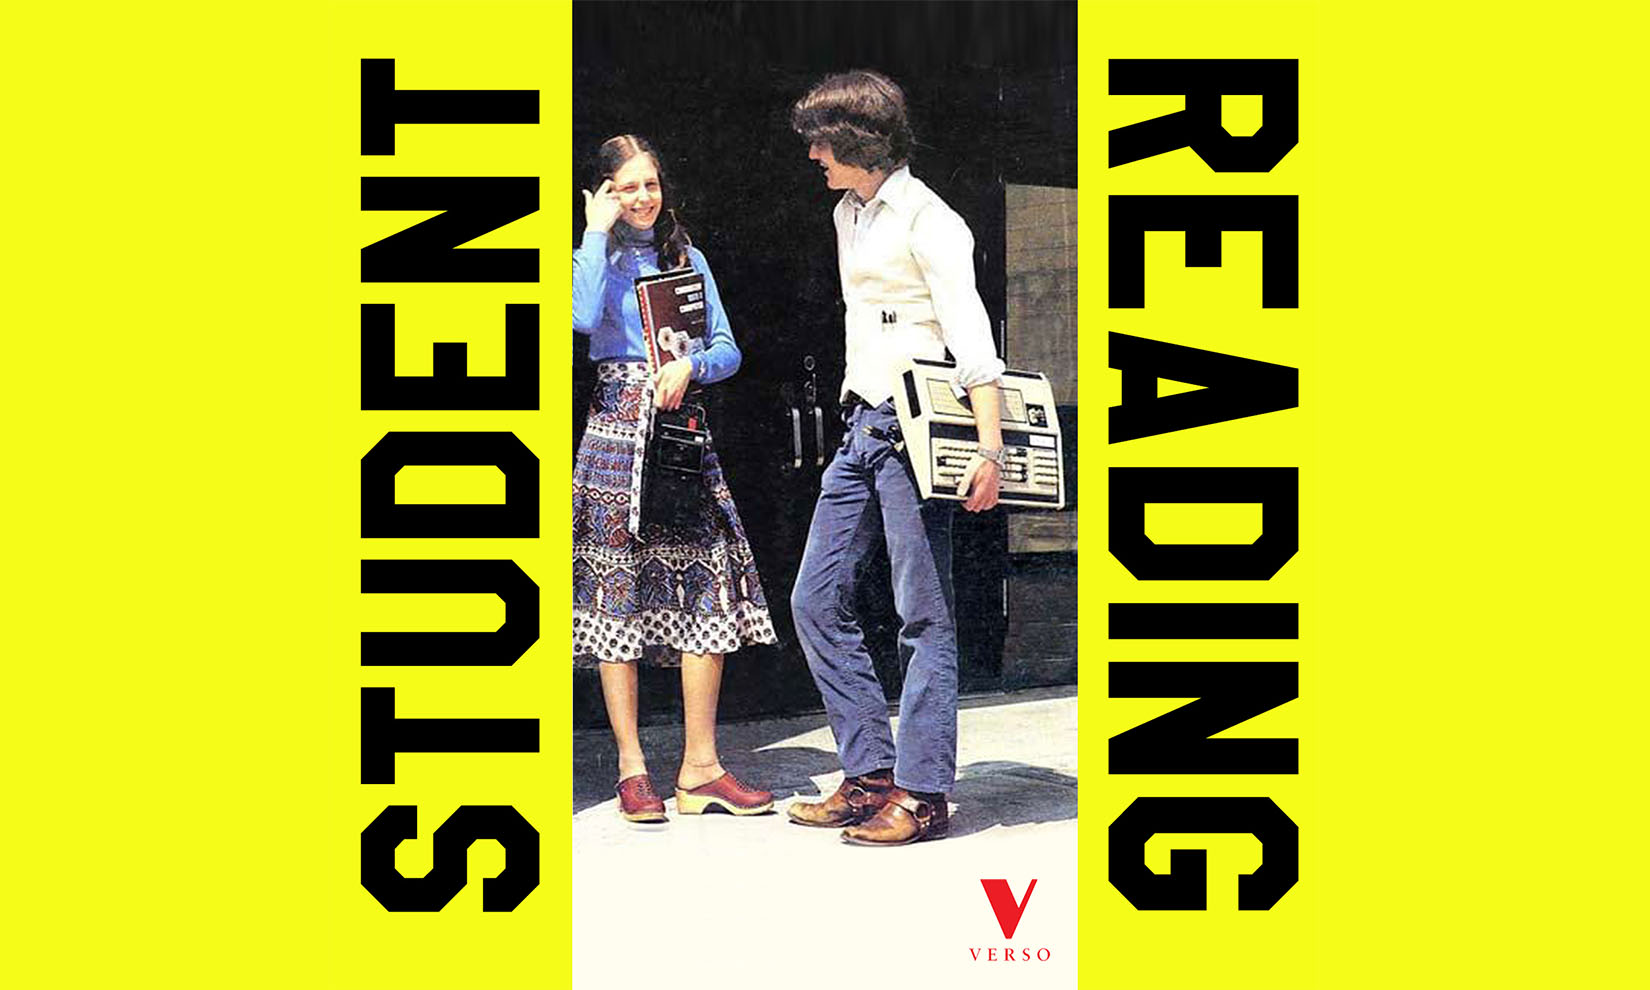 Verso_student_reading_2-